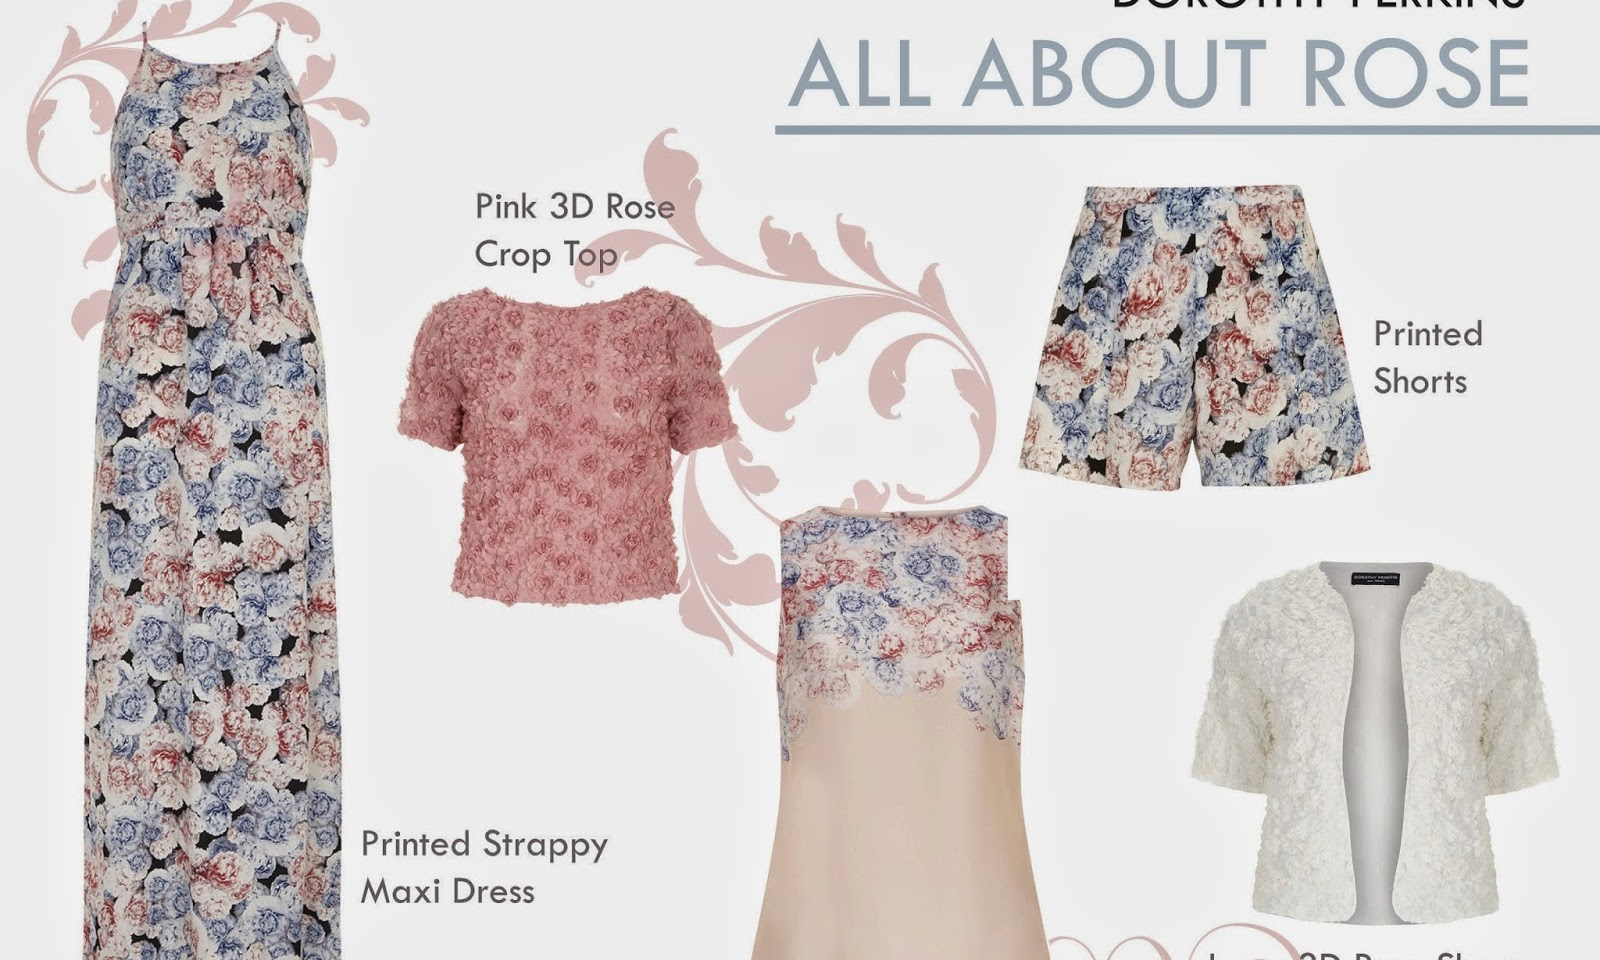 dorothy perkins all about rose